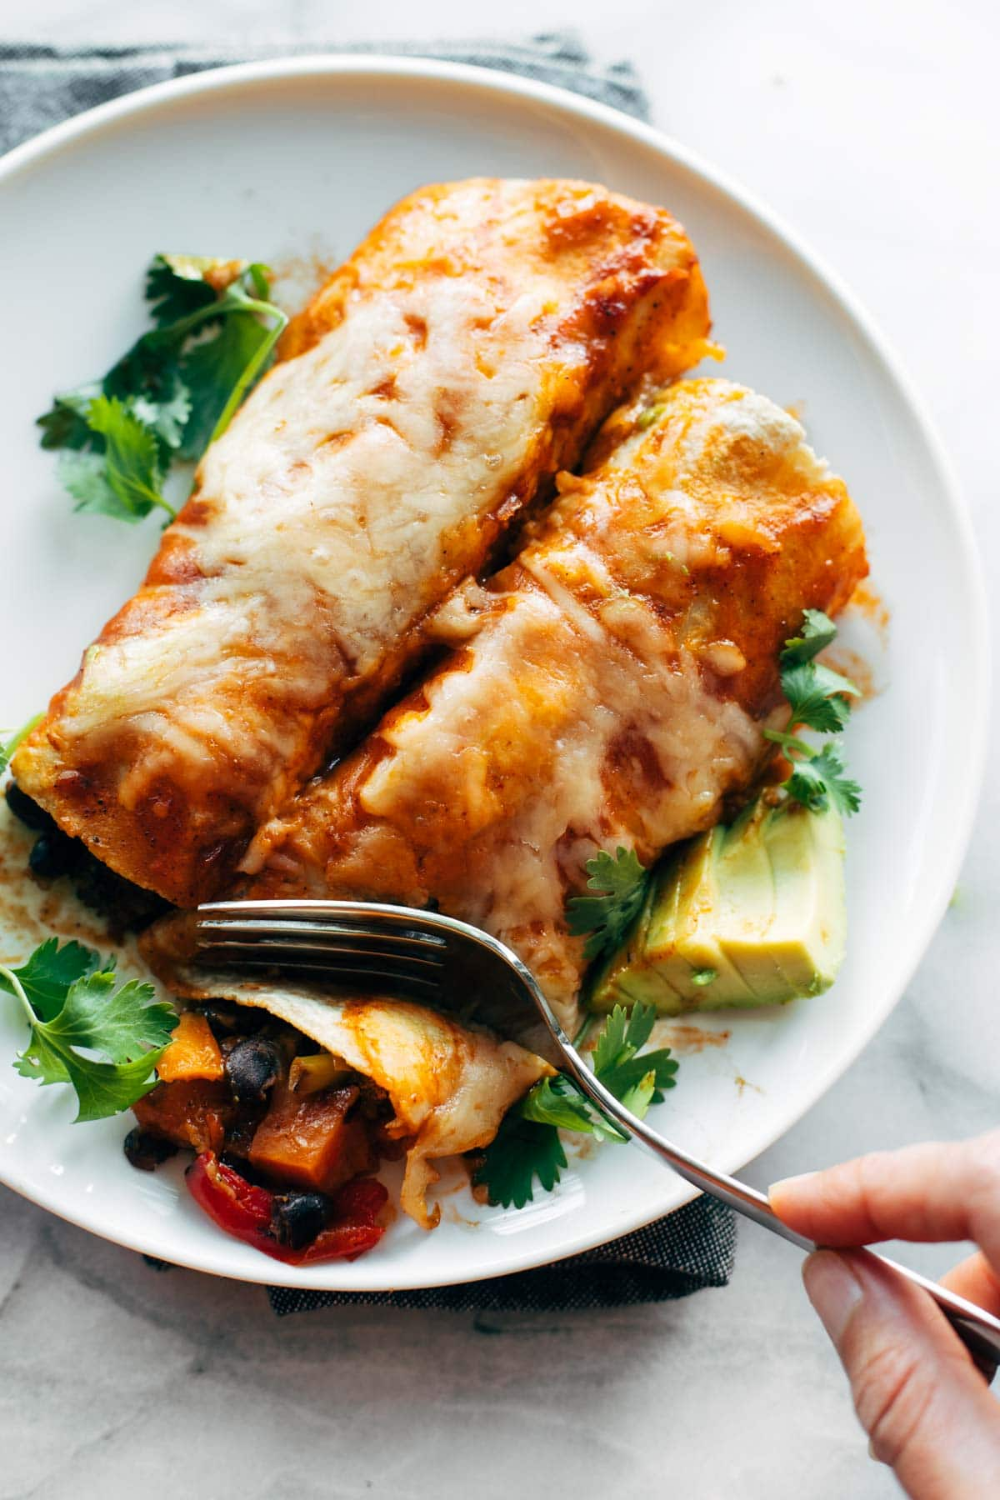 Veggie Enchiladas Easy Veggie Enchiladas! Saucy, cheese, filling, cozy, and packed with any roasted veggies you want. Super versatile and easy to make! | Easy Veggie Enchiladas! Saucy, cheese, filling, cozy, and packed with any roasted veggies you want. Super versatile and easy to make! |